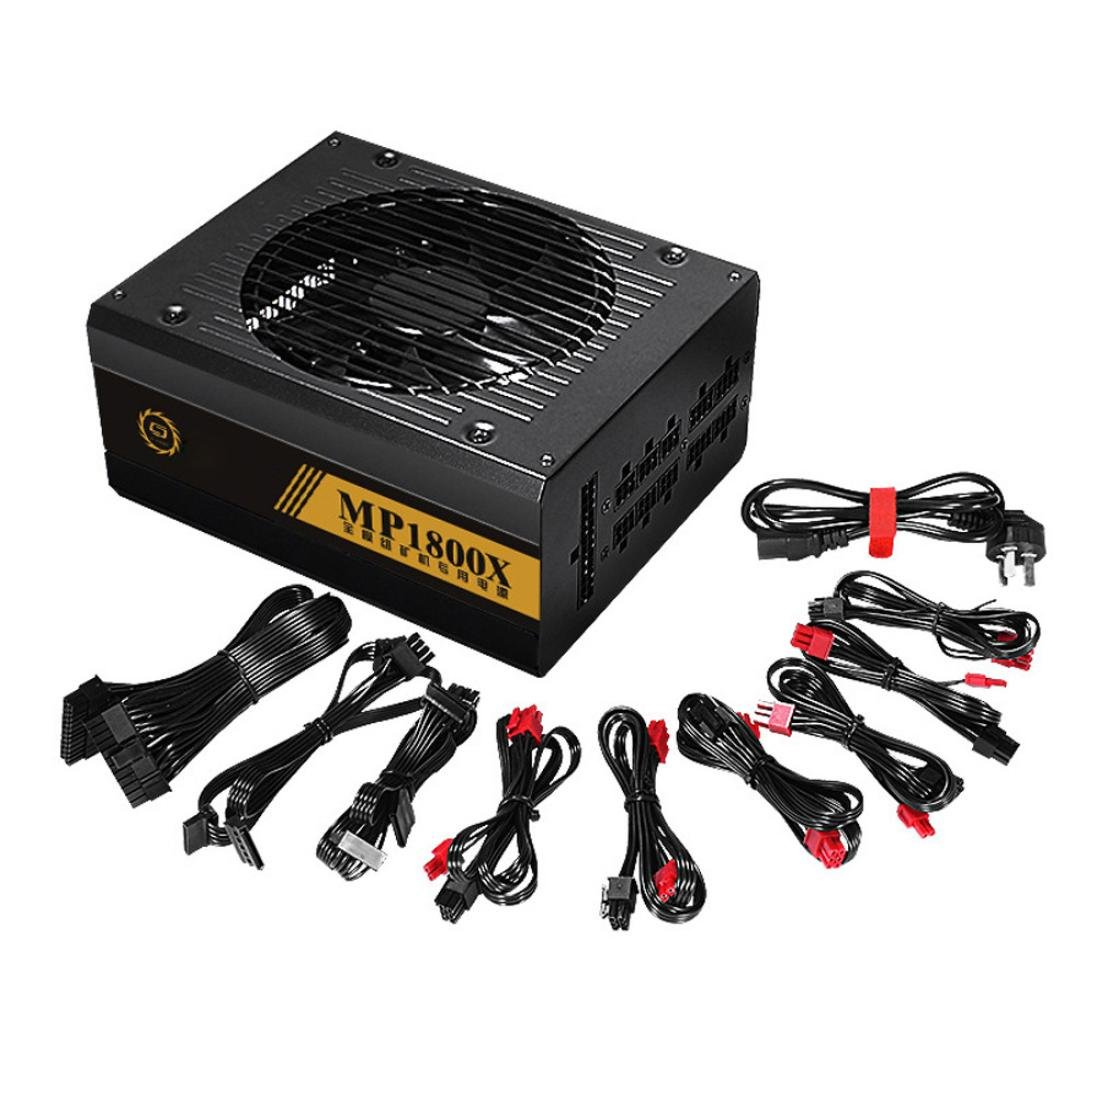 Gorgii 1600W Modular Power Supply For 6 GPU Eth Rig Ethereum Coin Mining Miner Machine (Black) by Gorgii